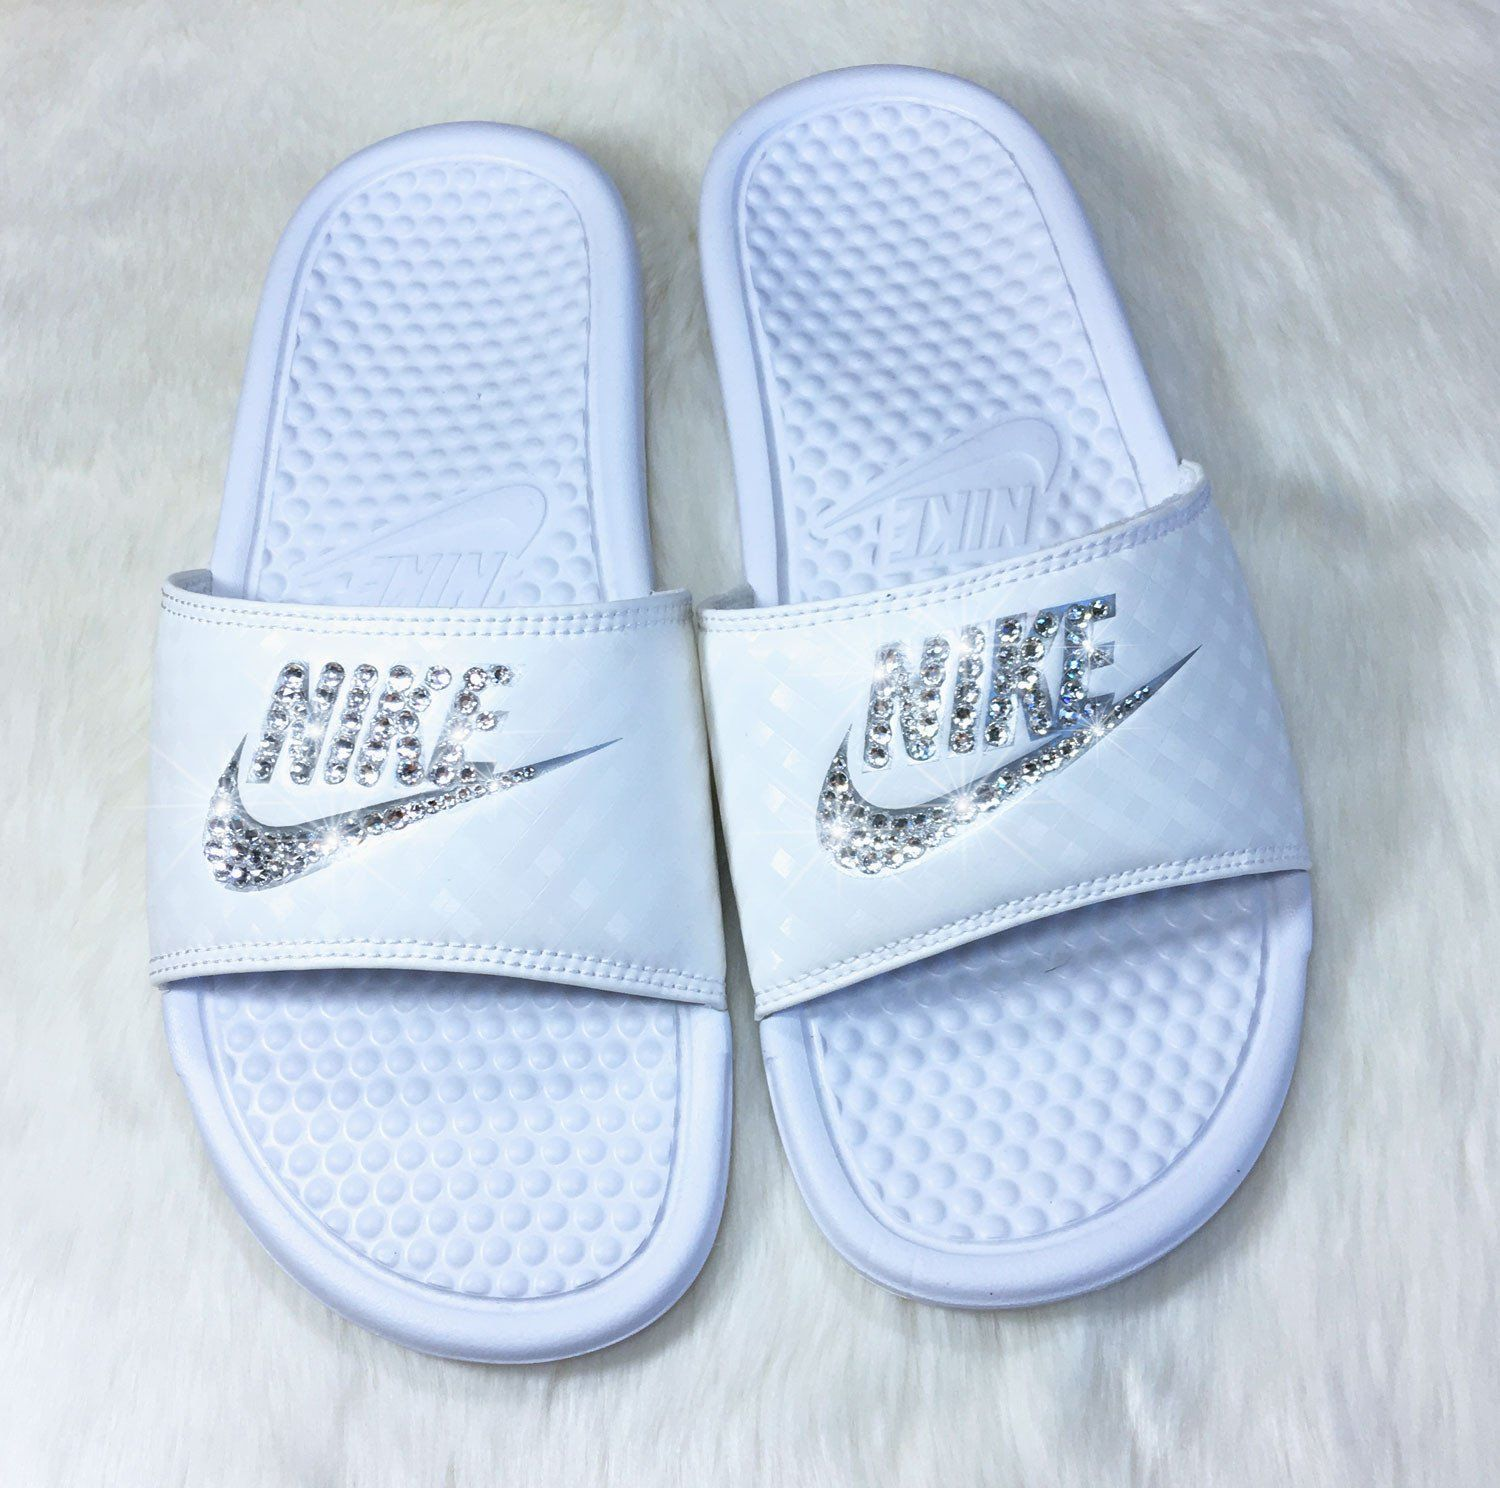 1582c6226f60 Slide into Summer with these Sparkling Nike Slide Sandals! Custom ...